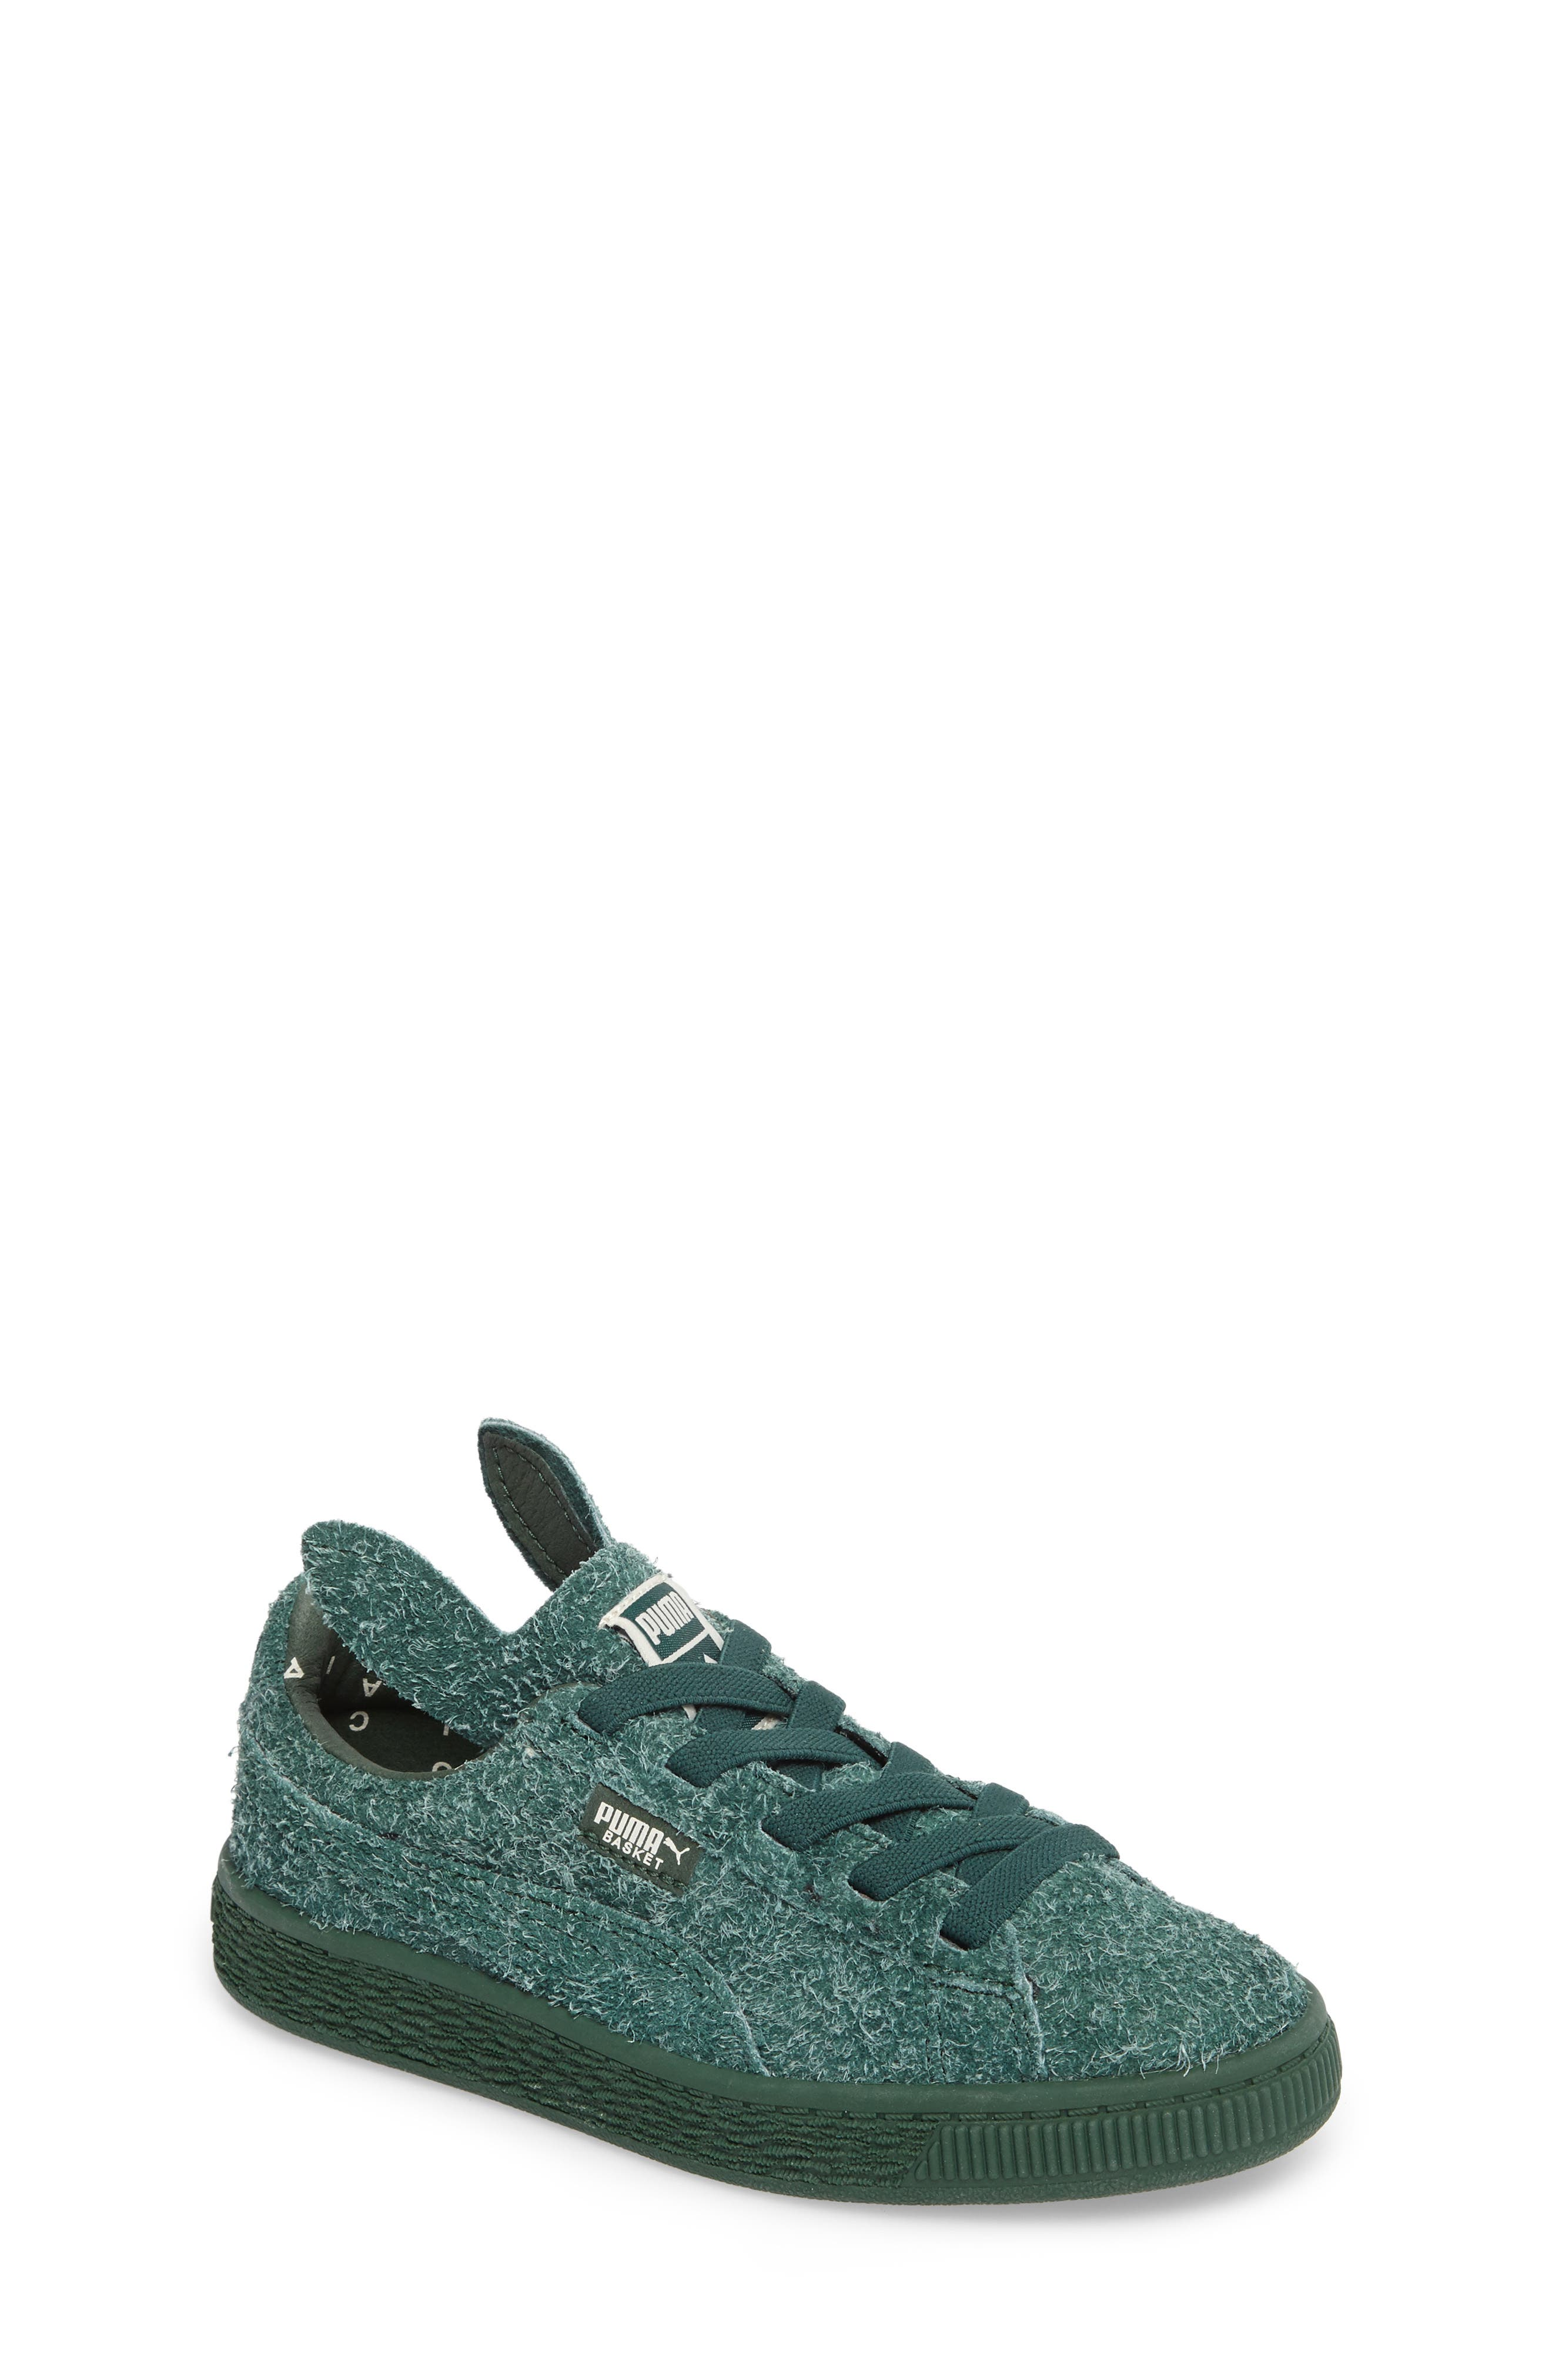 x tinycottons Basket Furry Sneaker,                         Main,                         color, 300